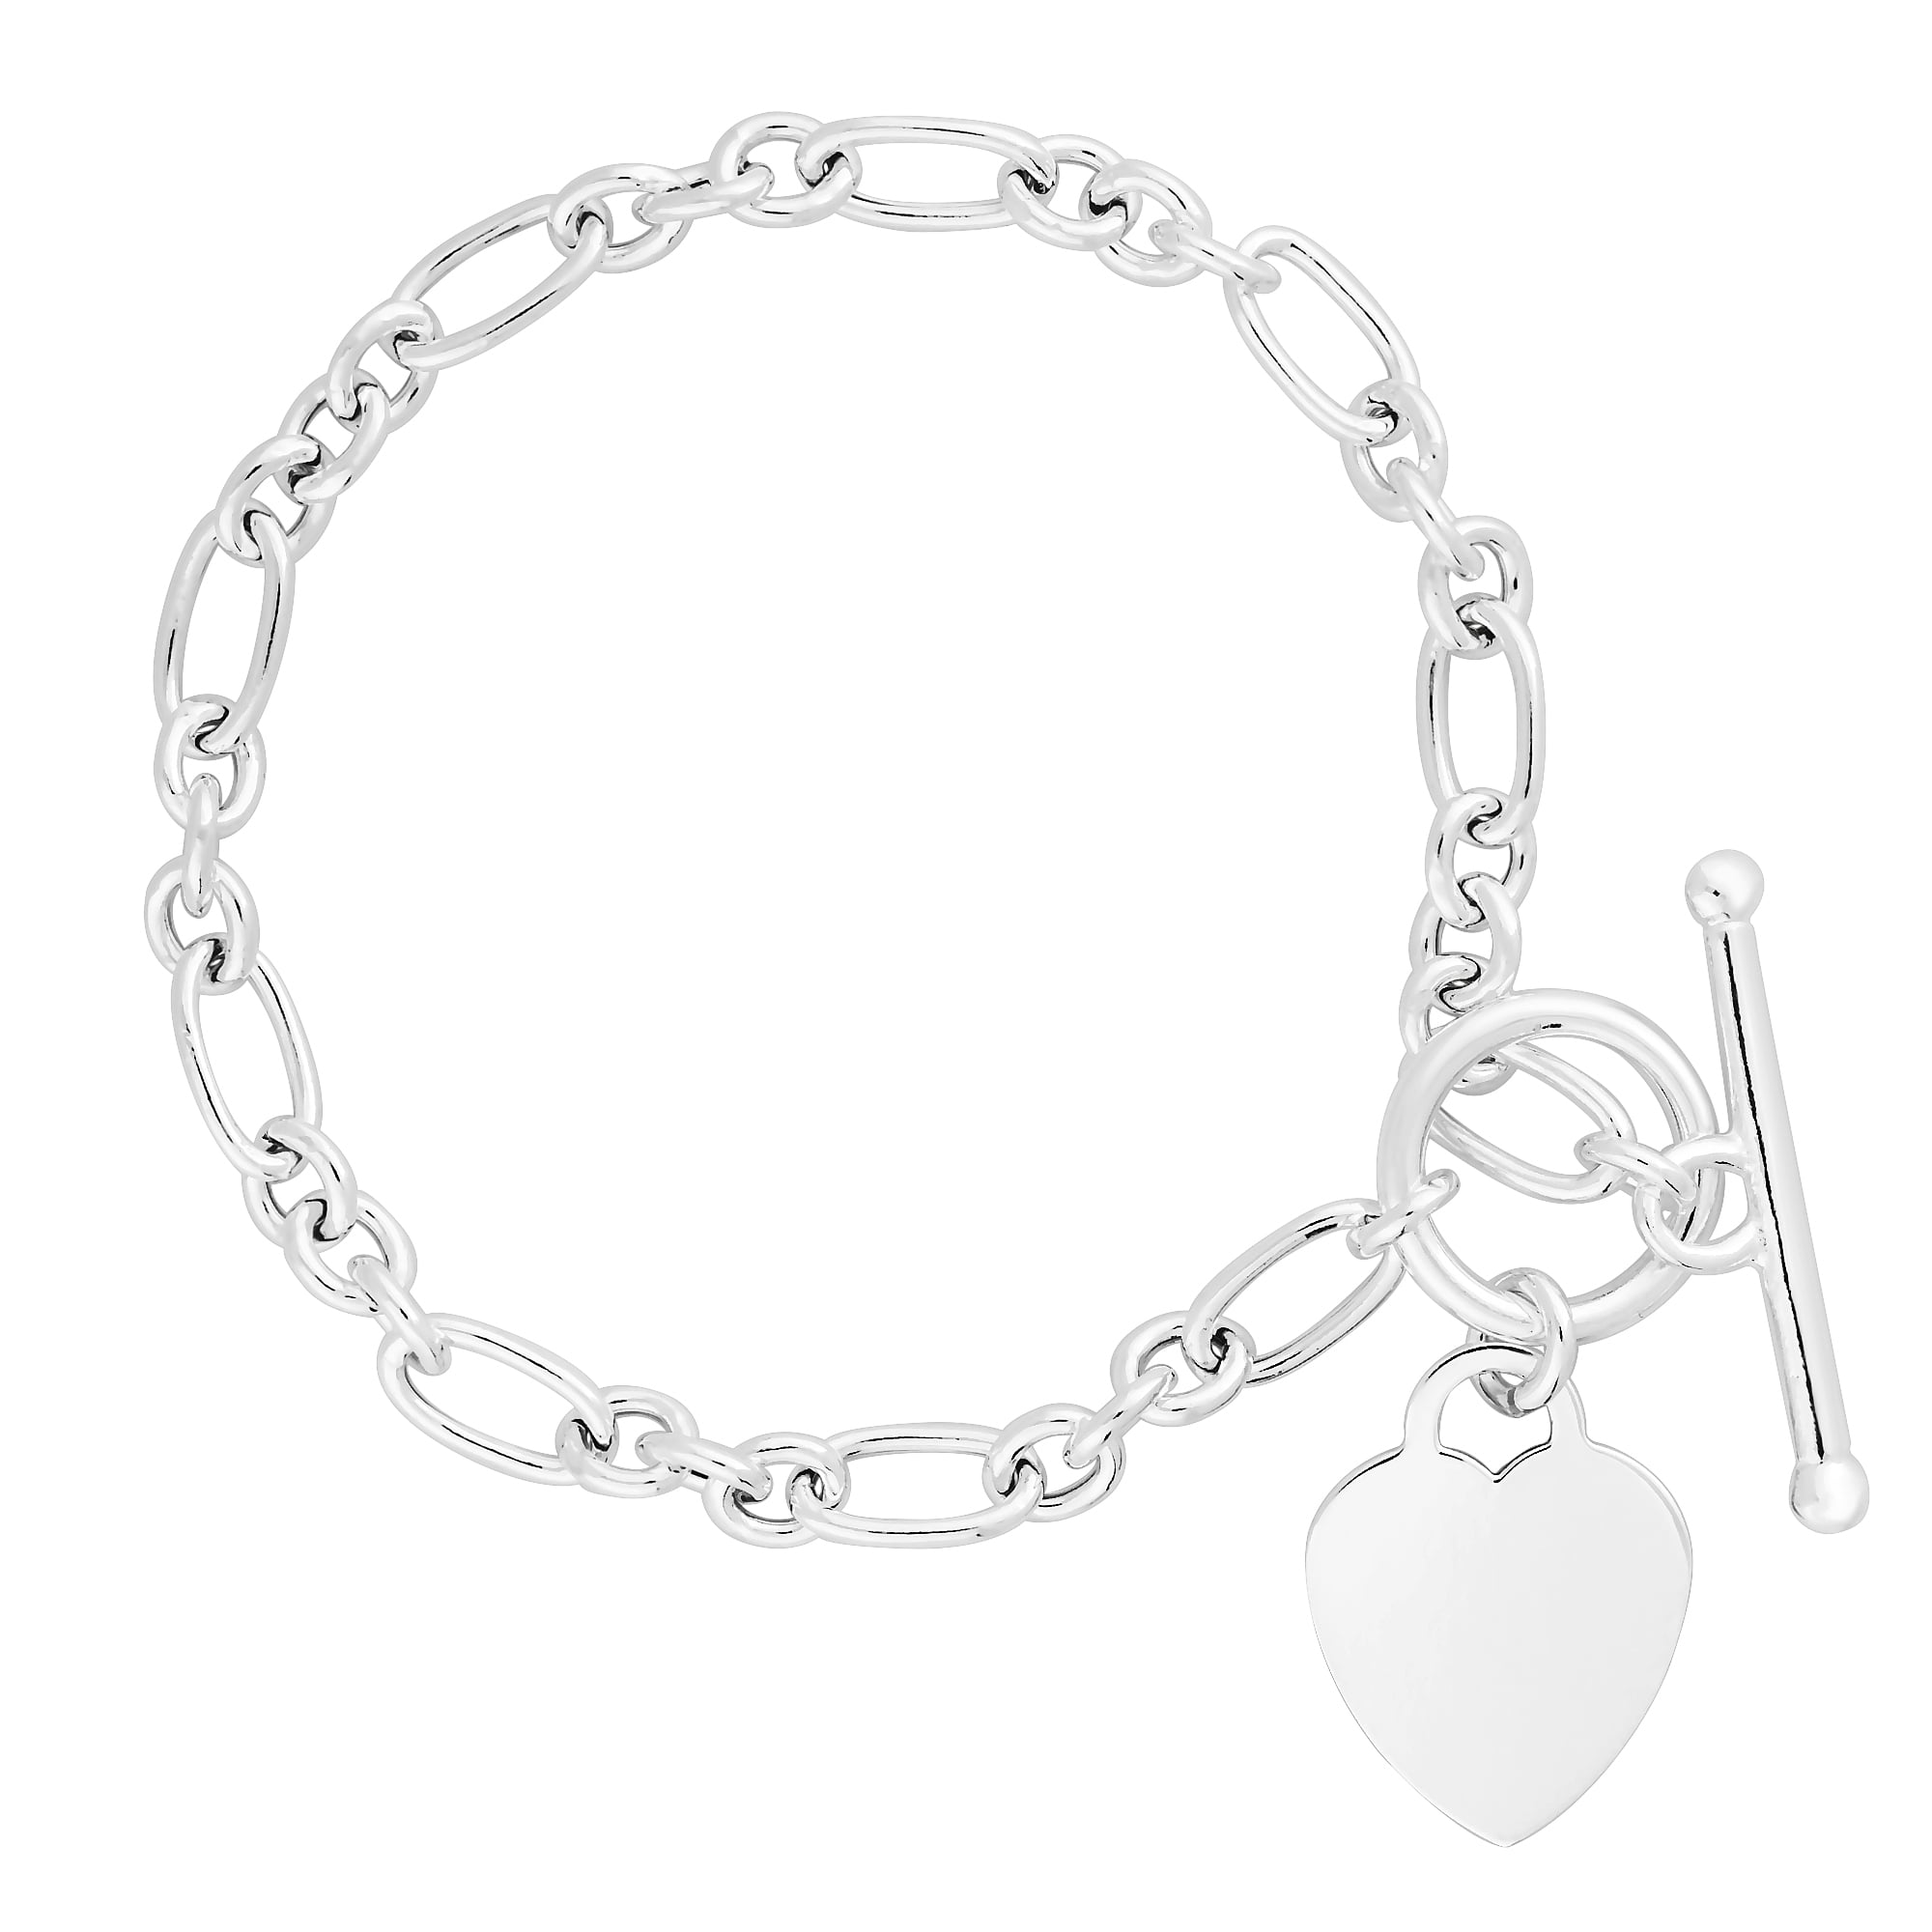 anklet dangling watches overstock free shipping jewelry silver product sterling heart hearts charm bracelet today